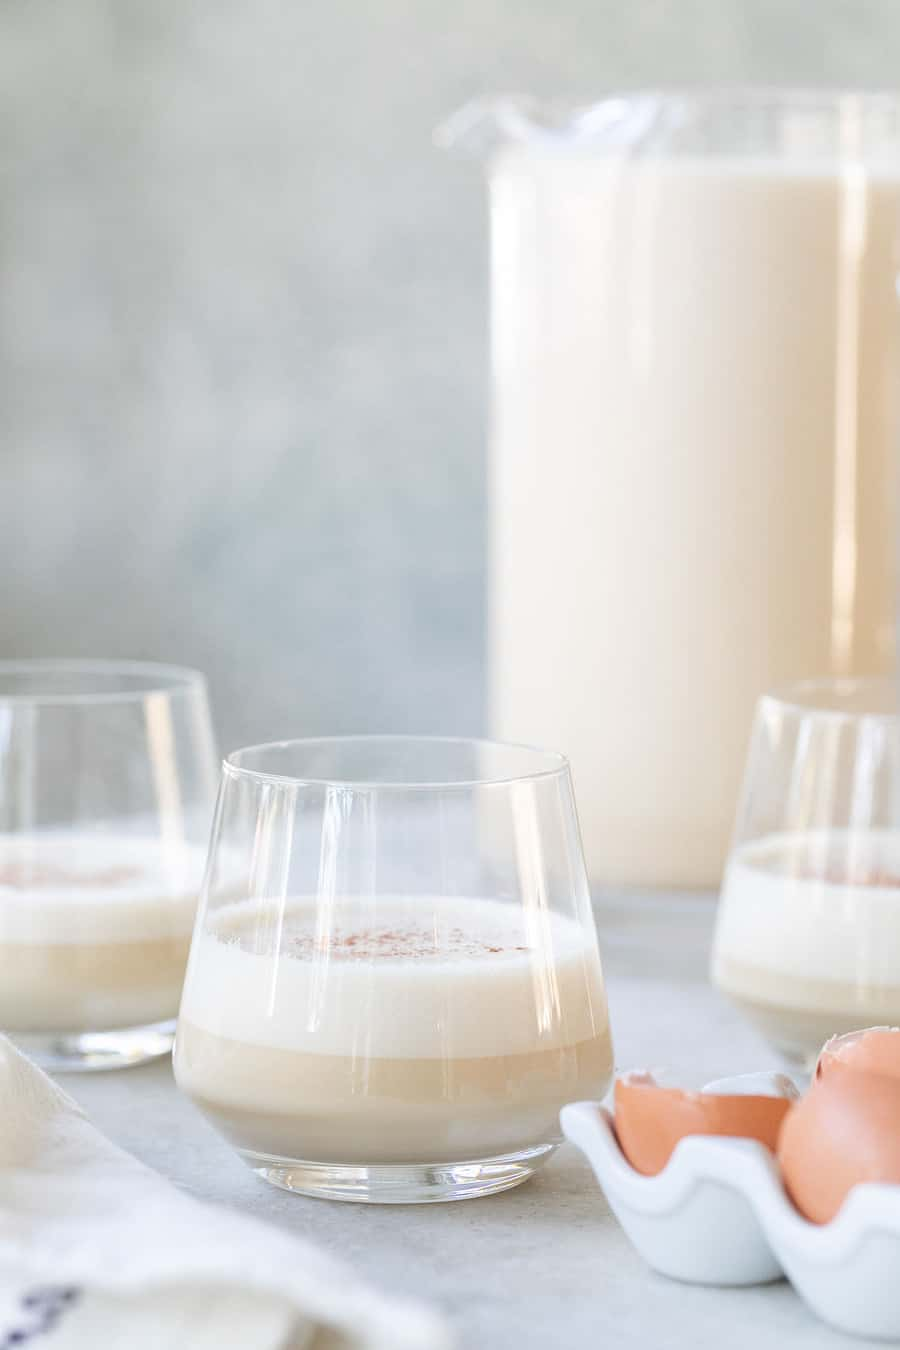 homemade eggnog in a glass with cinnamon